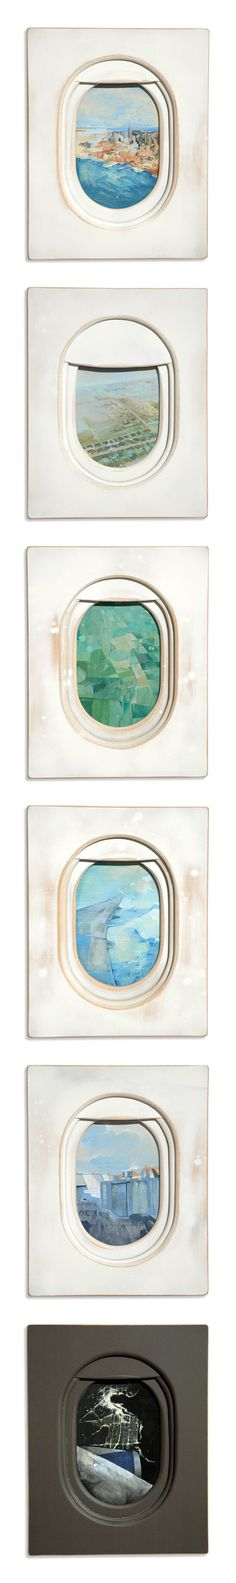 Paintings of airplane windows